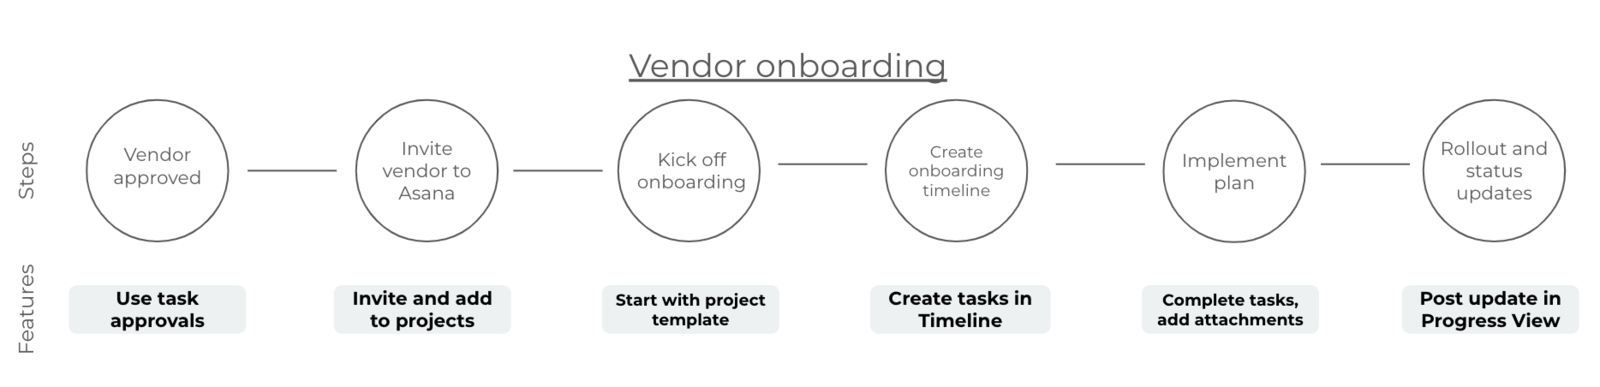 GRAPHIC of the process vendor onboarding can follow in Asana from start to finish